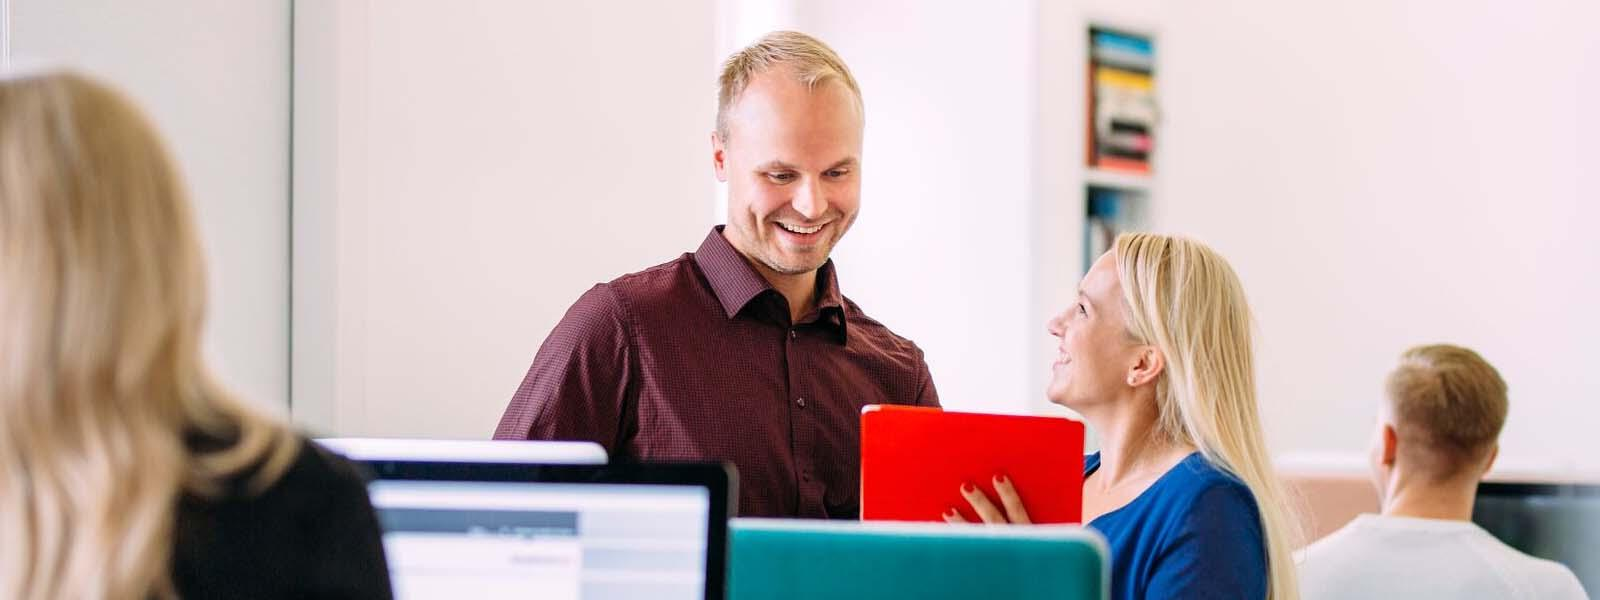 Woman with red notebook talks to a man and both smiling